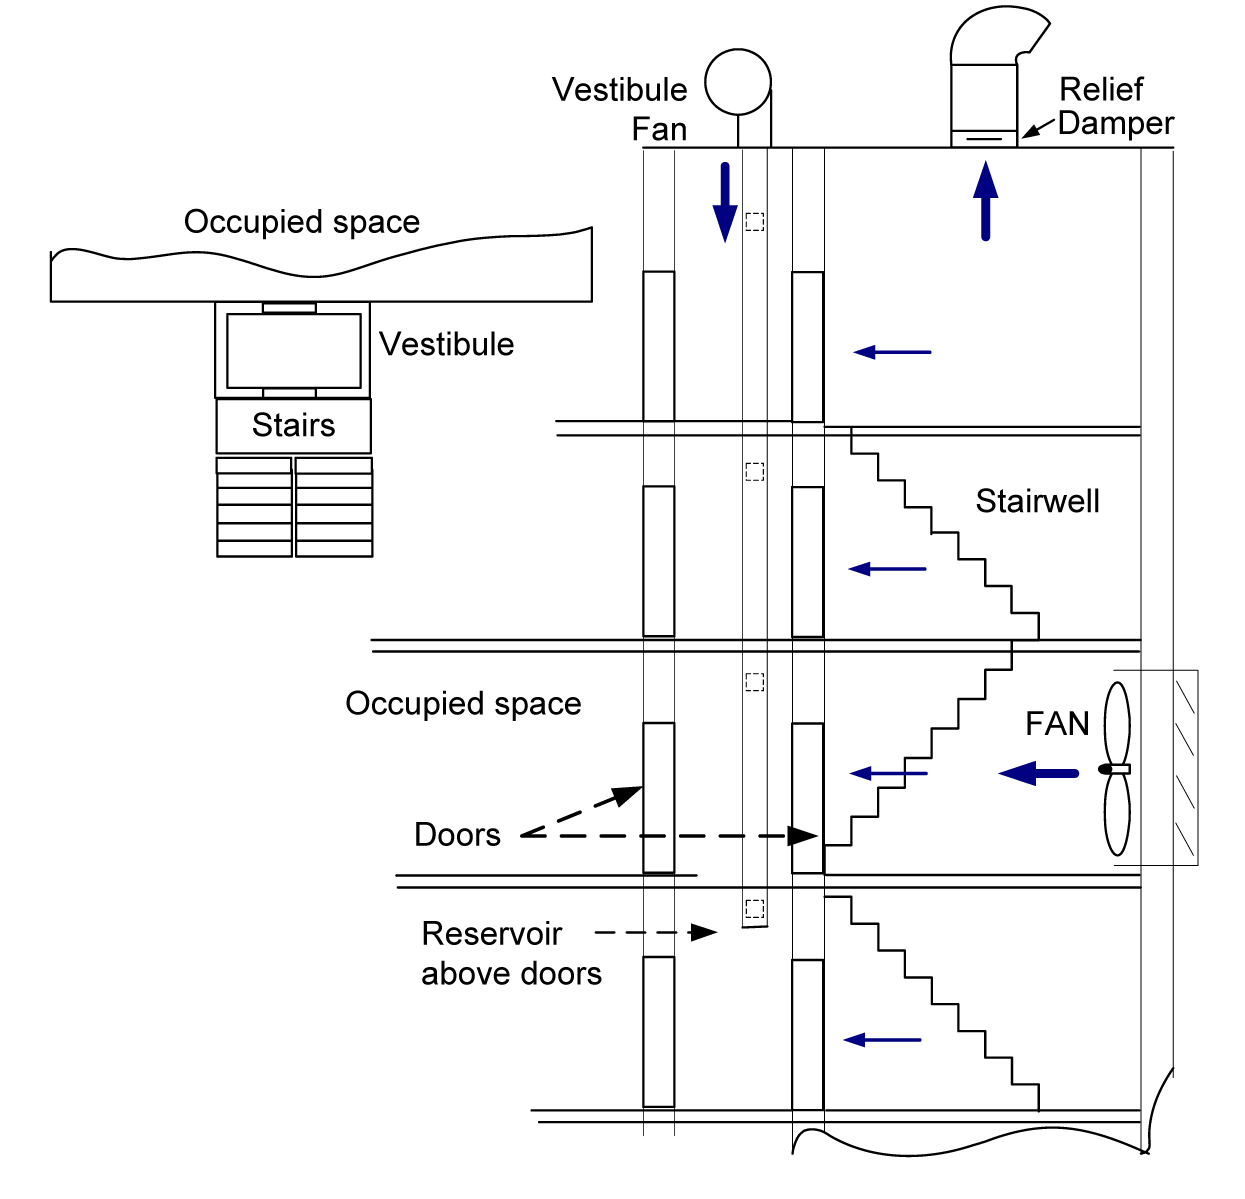 Basic HVAC System Diagram moreover Simple Calvin Cycle. on block #181887